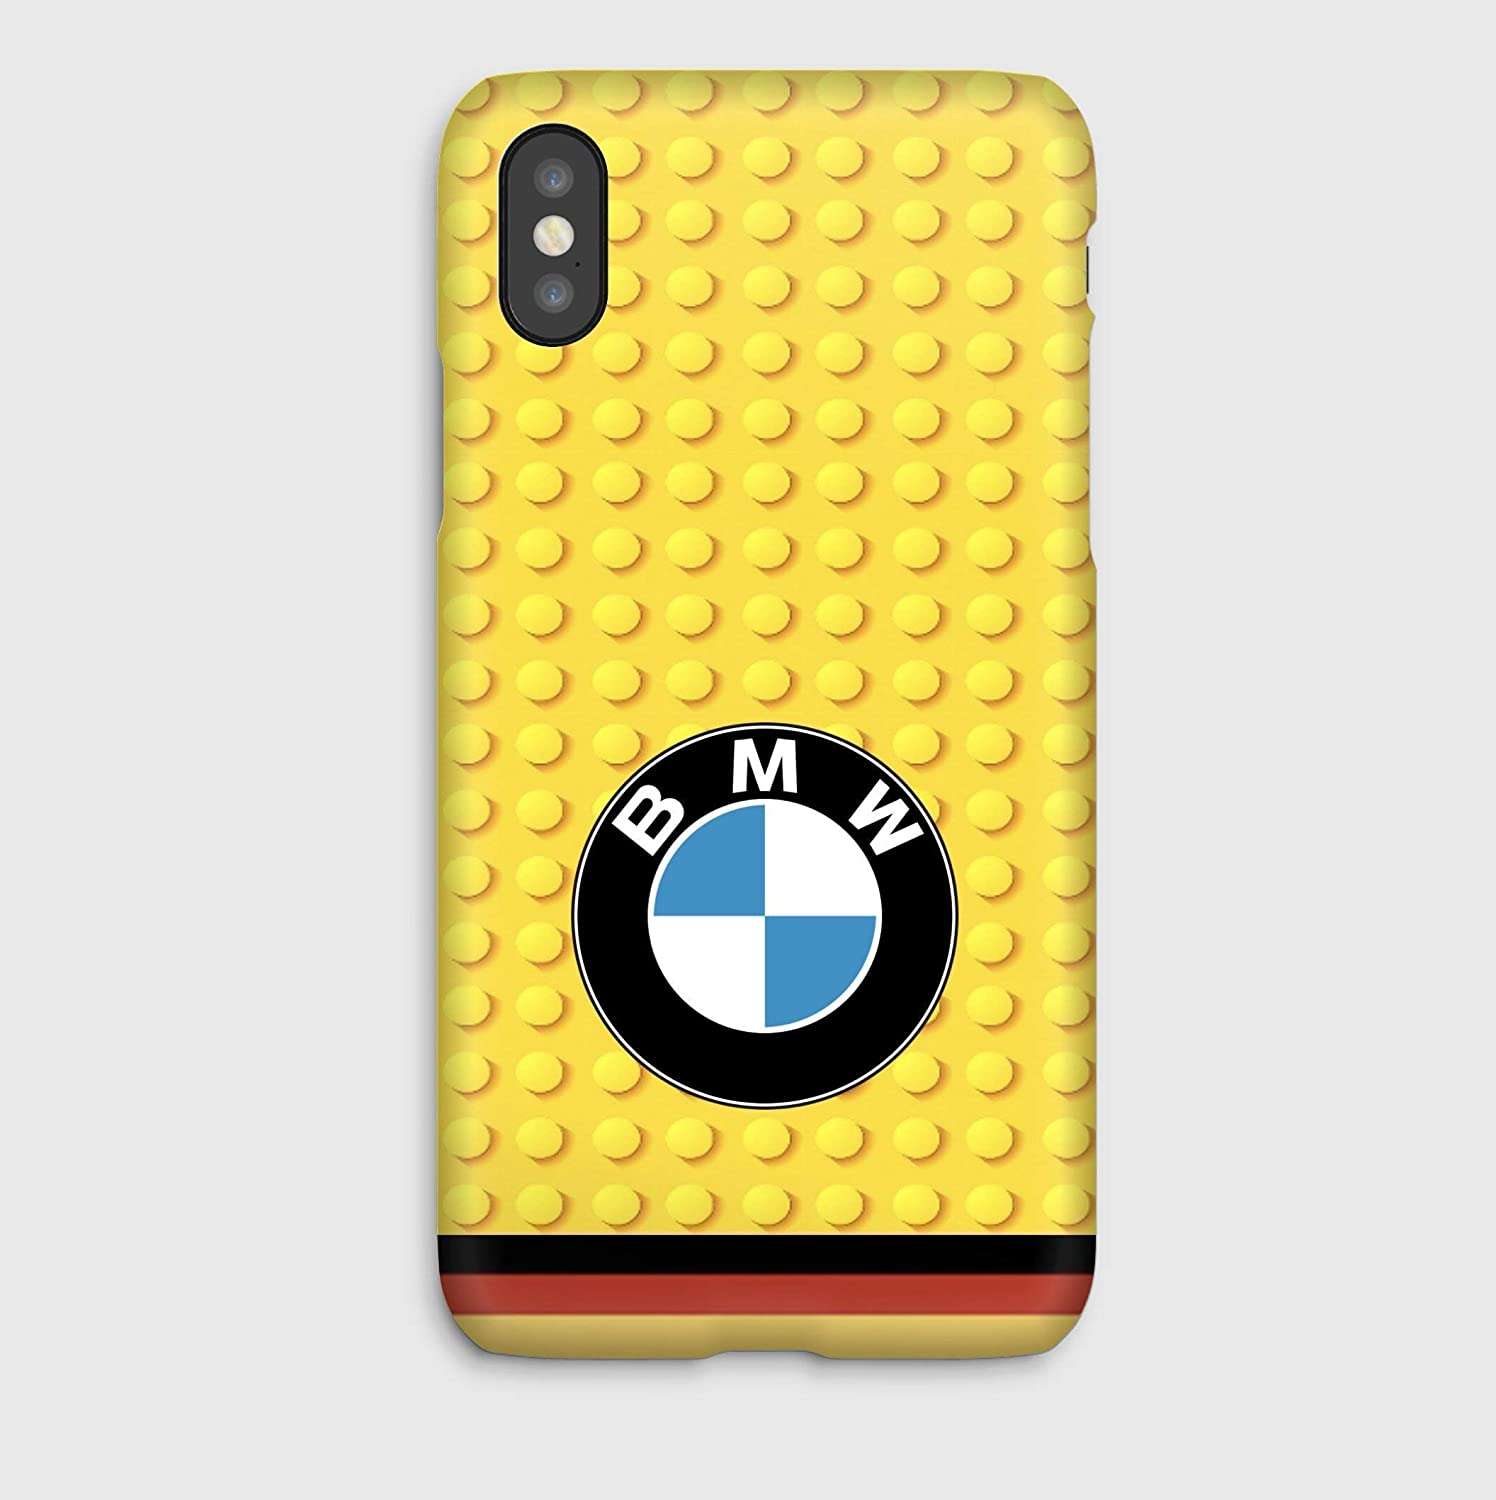 Lego & BMW, coque pour iPhone XS, XS Max, XR, X, 8, 8+, 7, 7+, 6S, 6, 6S+, 6+, 5C, 5, 5S, 5SE, 4S, 4,